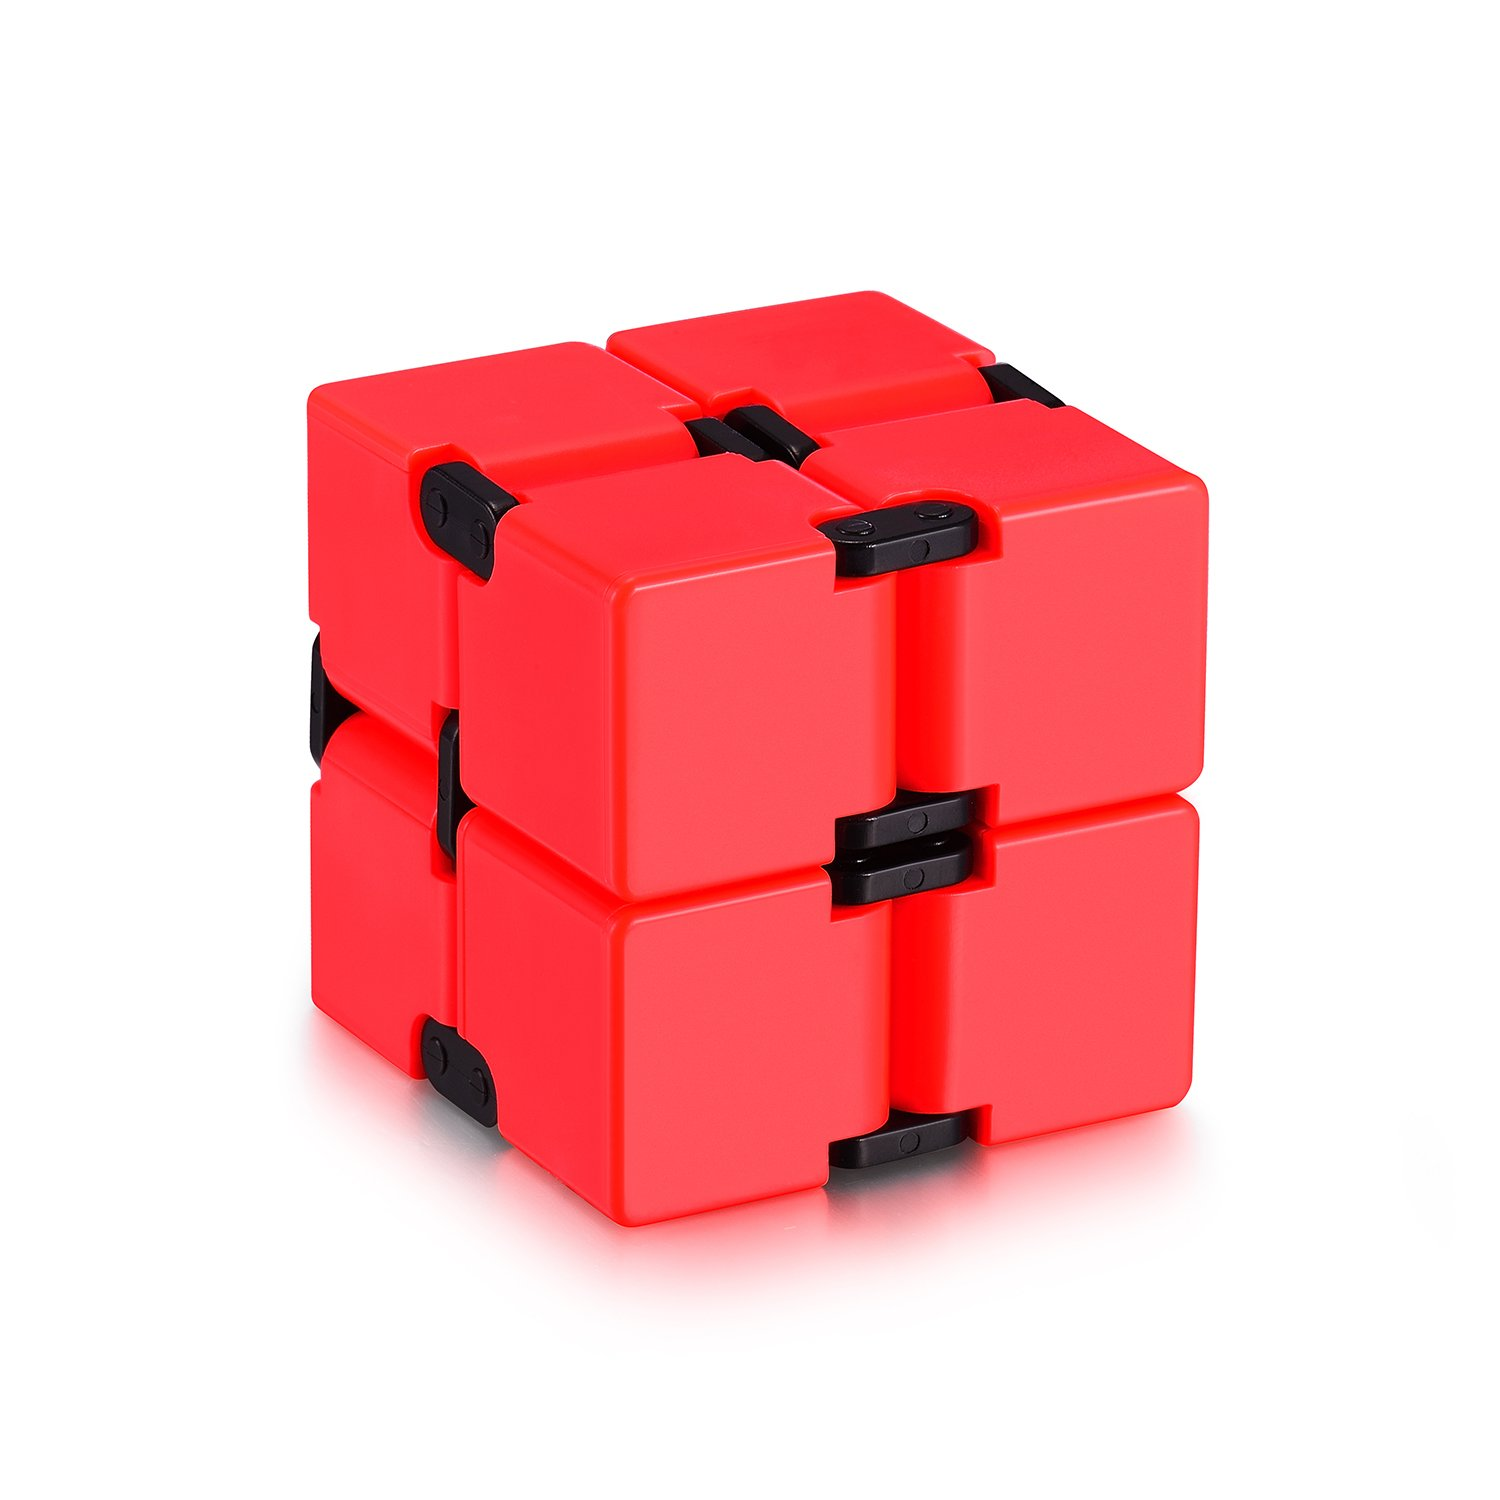 Infinity Cube Fidget Cube Toy for Adults & Kids Relieve Stress & Anxiety Hand Fidget Stress Reducer Best for ADD,ADHD,OCD,Anxiety Disorder,Autism by Ganowo (Red)